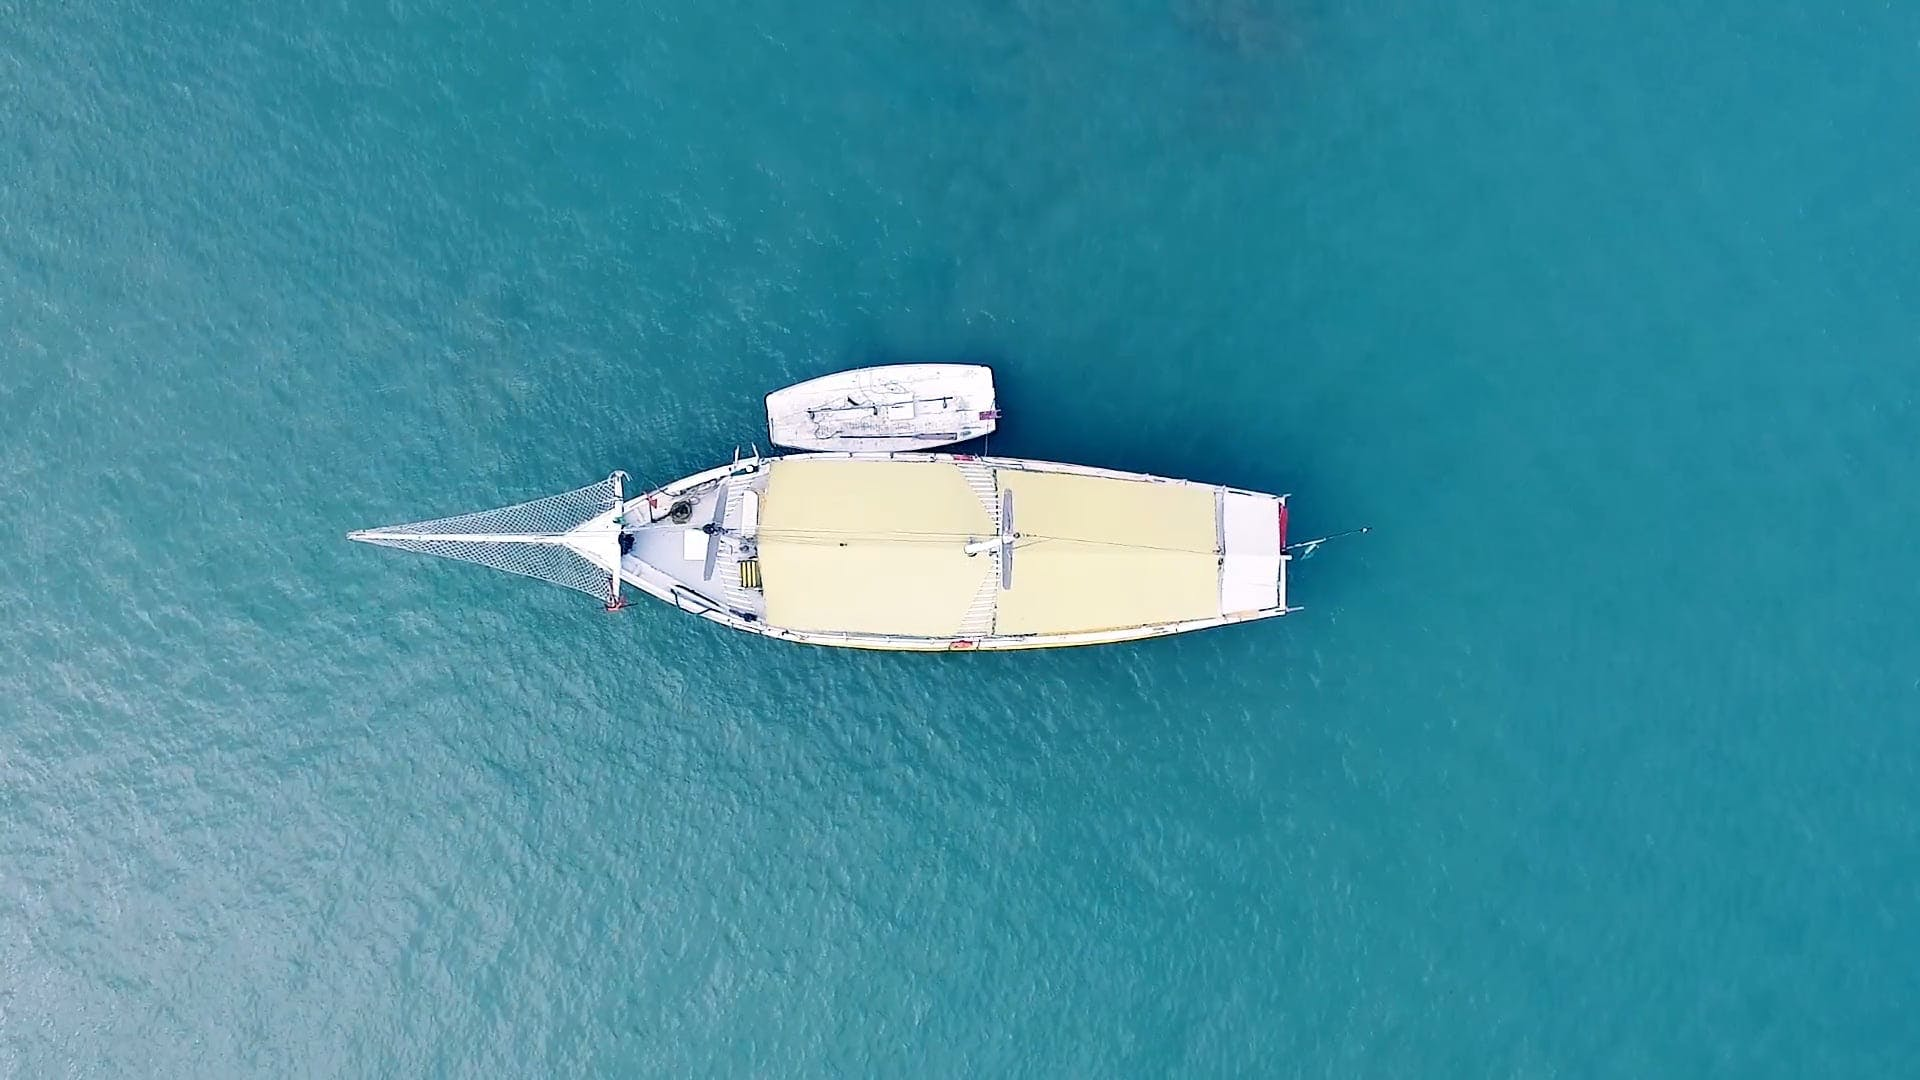 Top View Of A Boat On The Sea